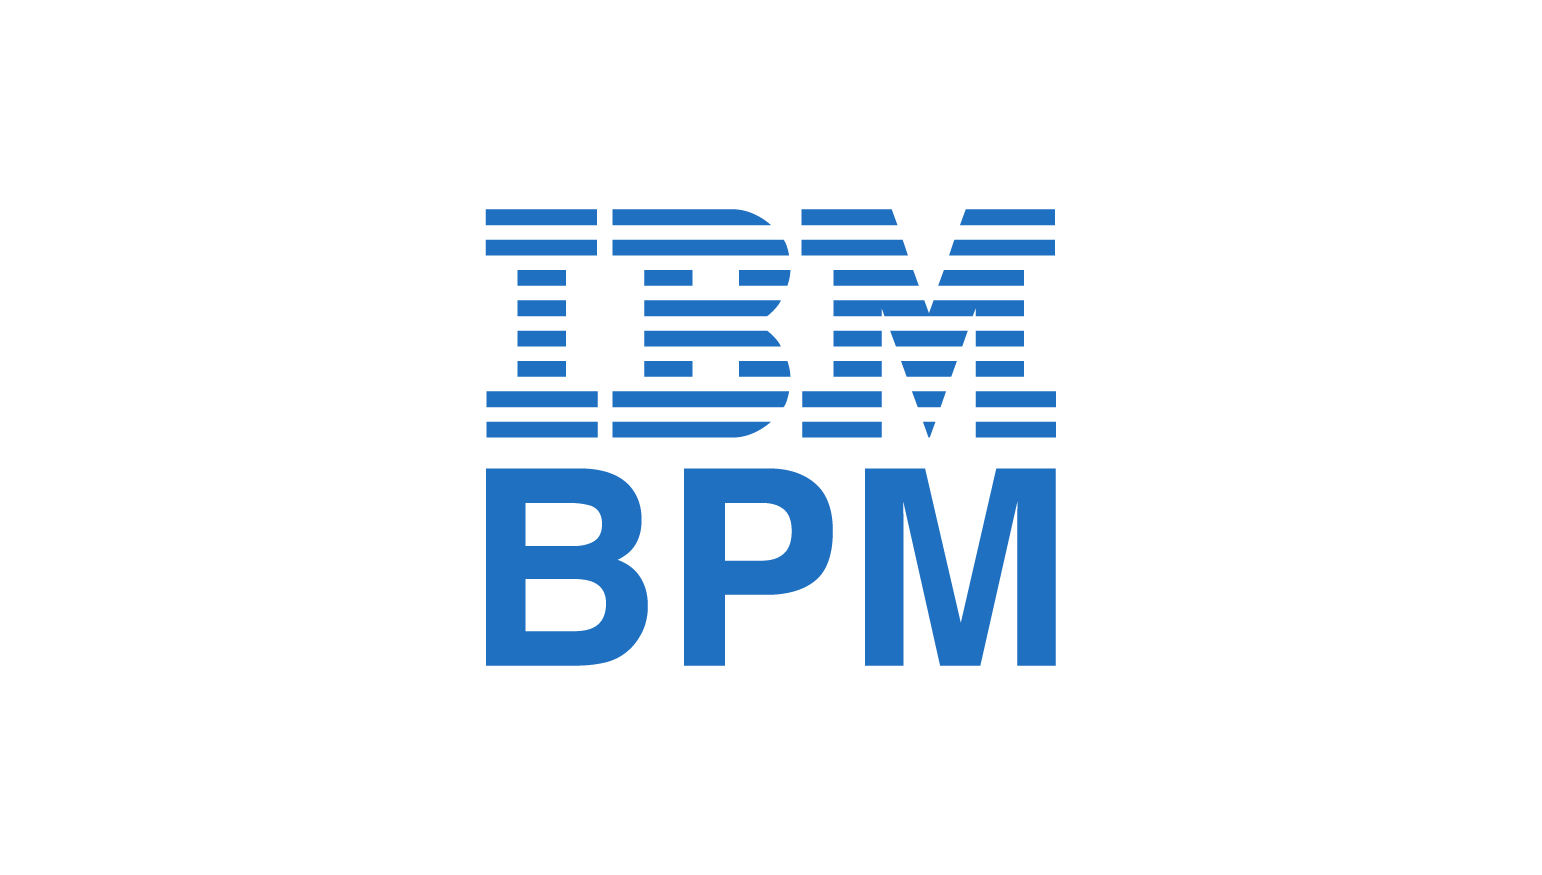 ibm-bpm.png